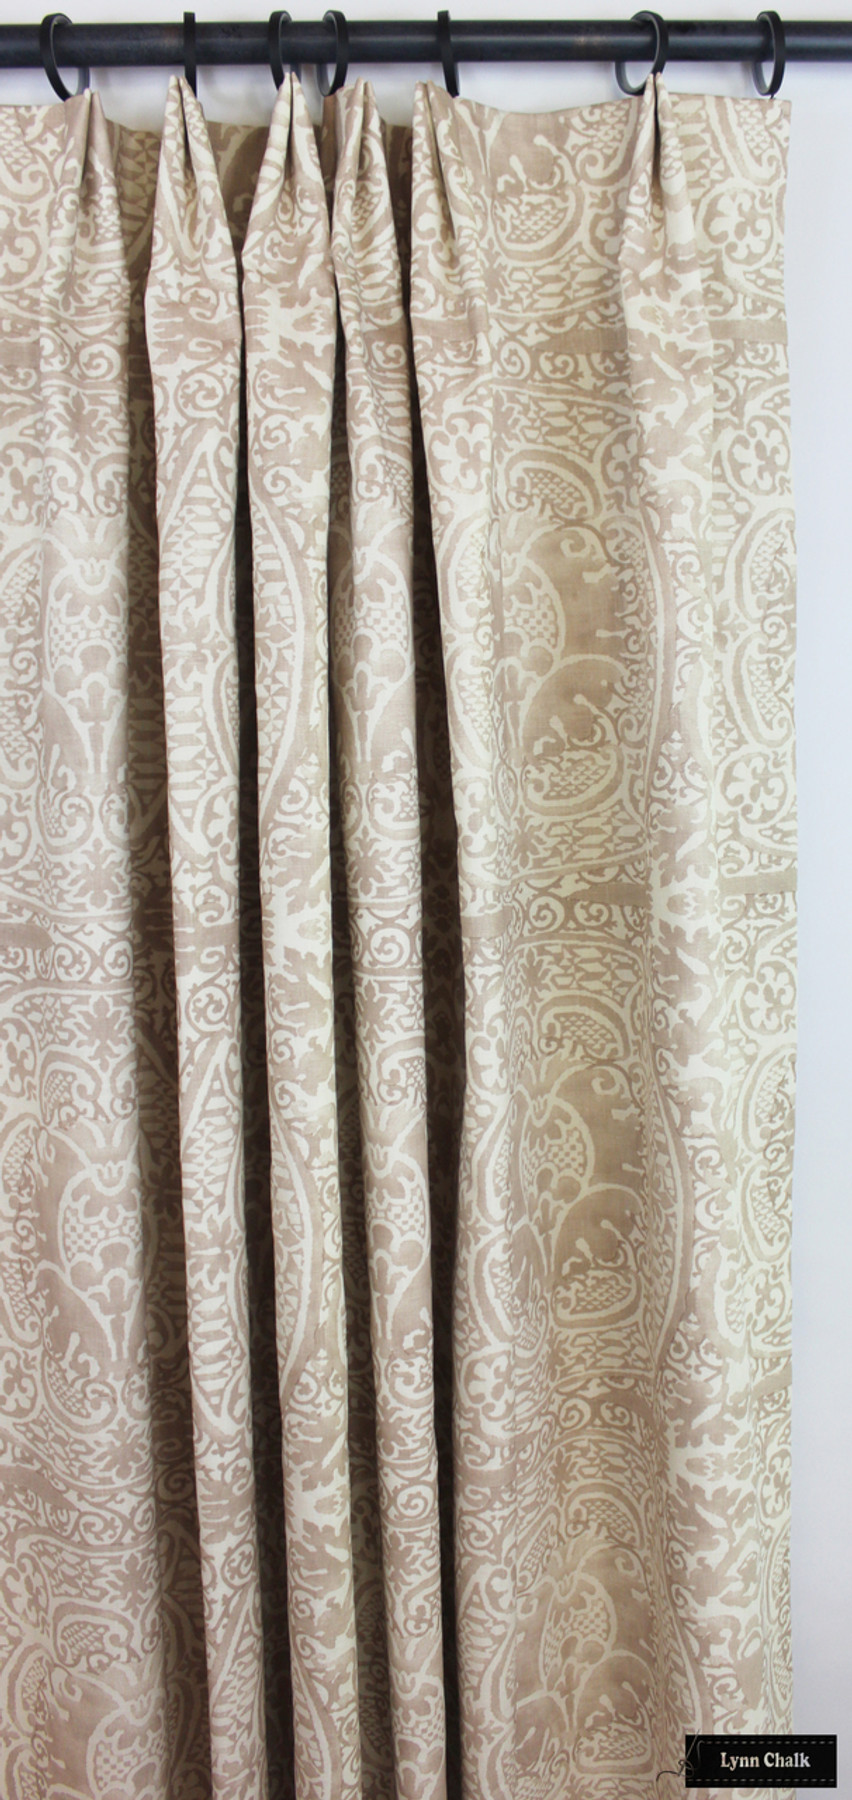 Custom Drapes in Veneto in Pumice